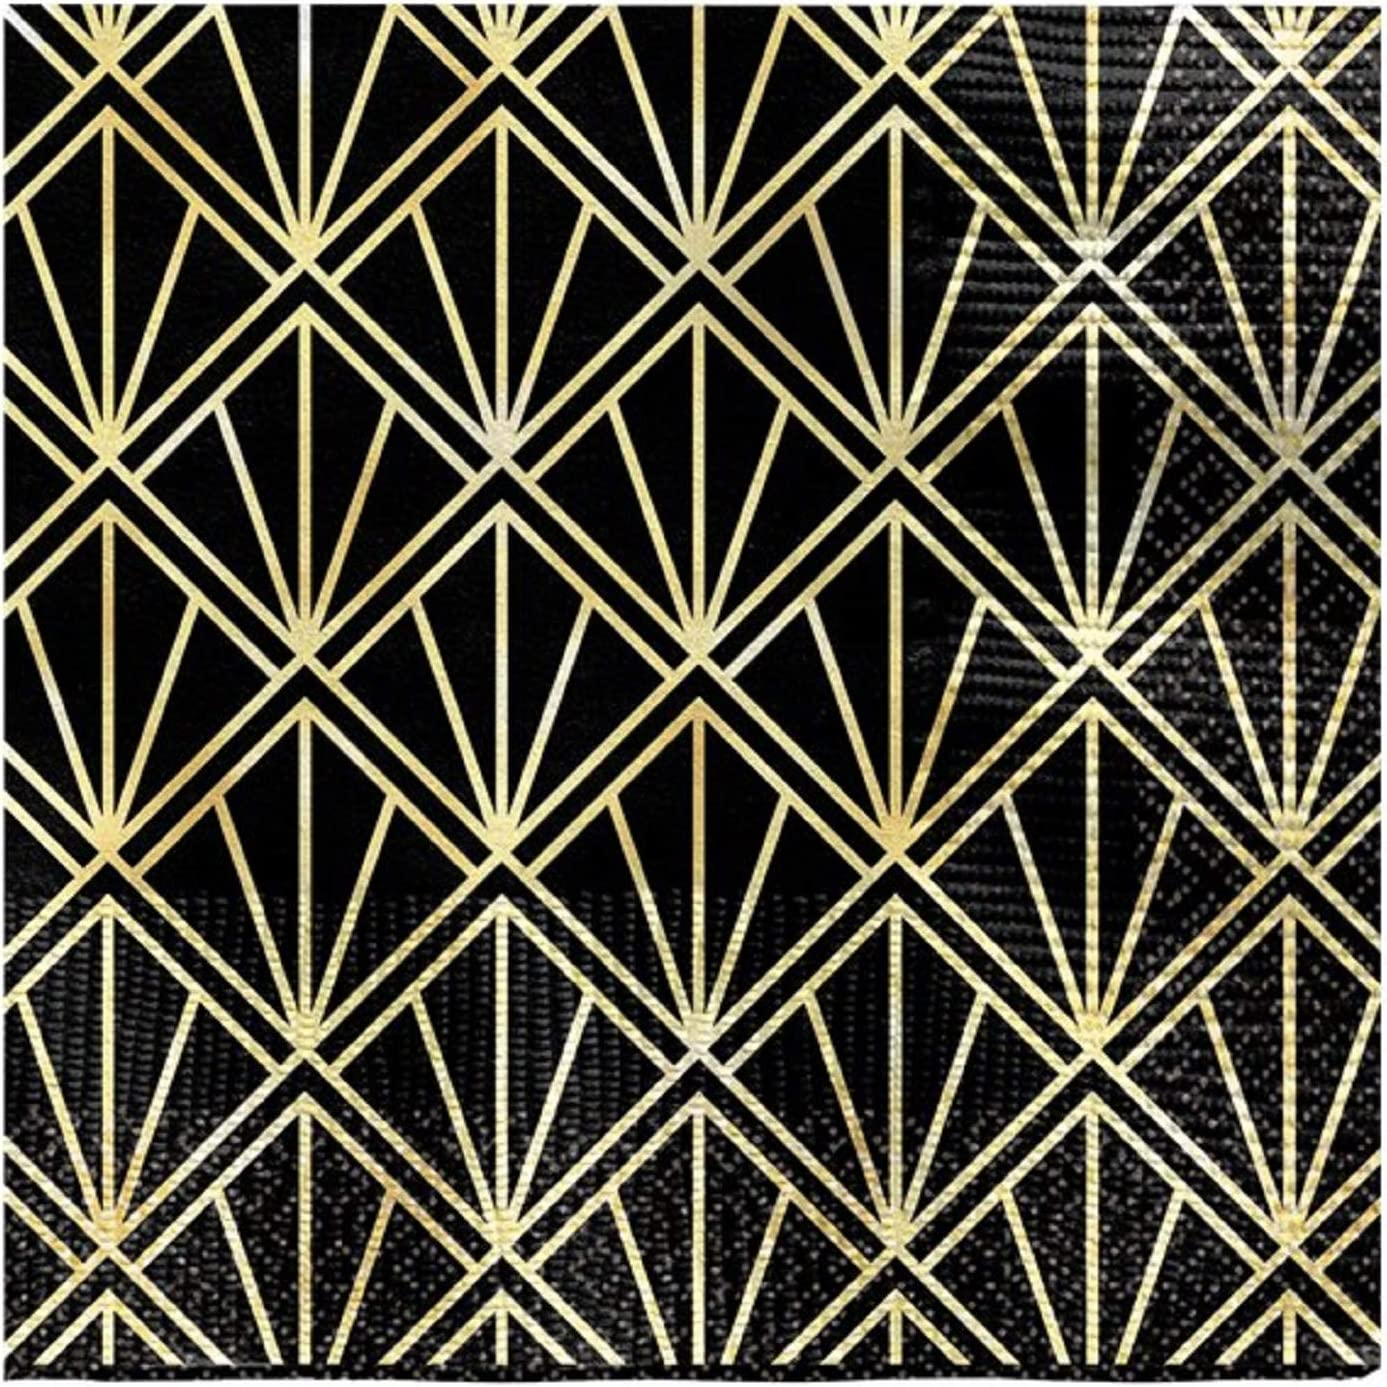 Black Gold Vintage Hollywood Beverage Napkins Theme 1920s Art Deco Adults Birthday New Years Eve Party Celebration Tableware Decorations